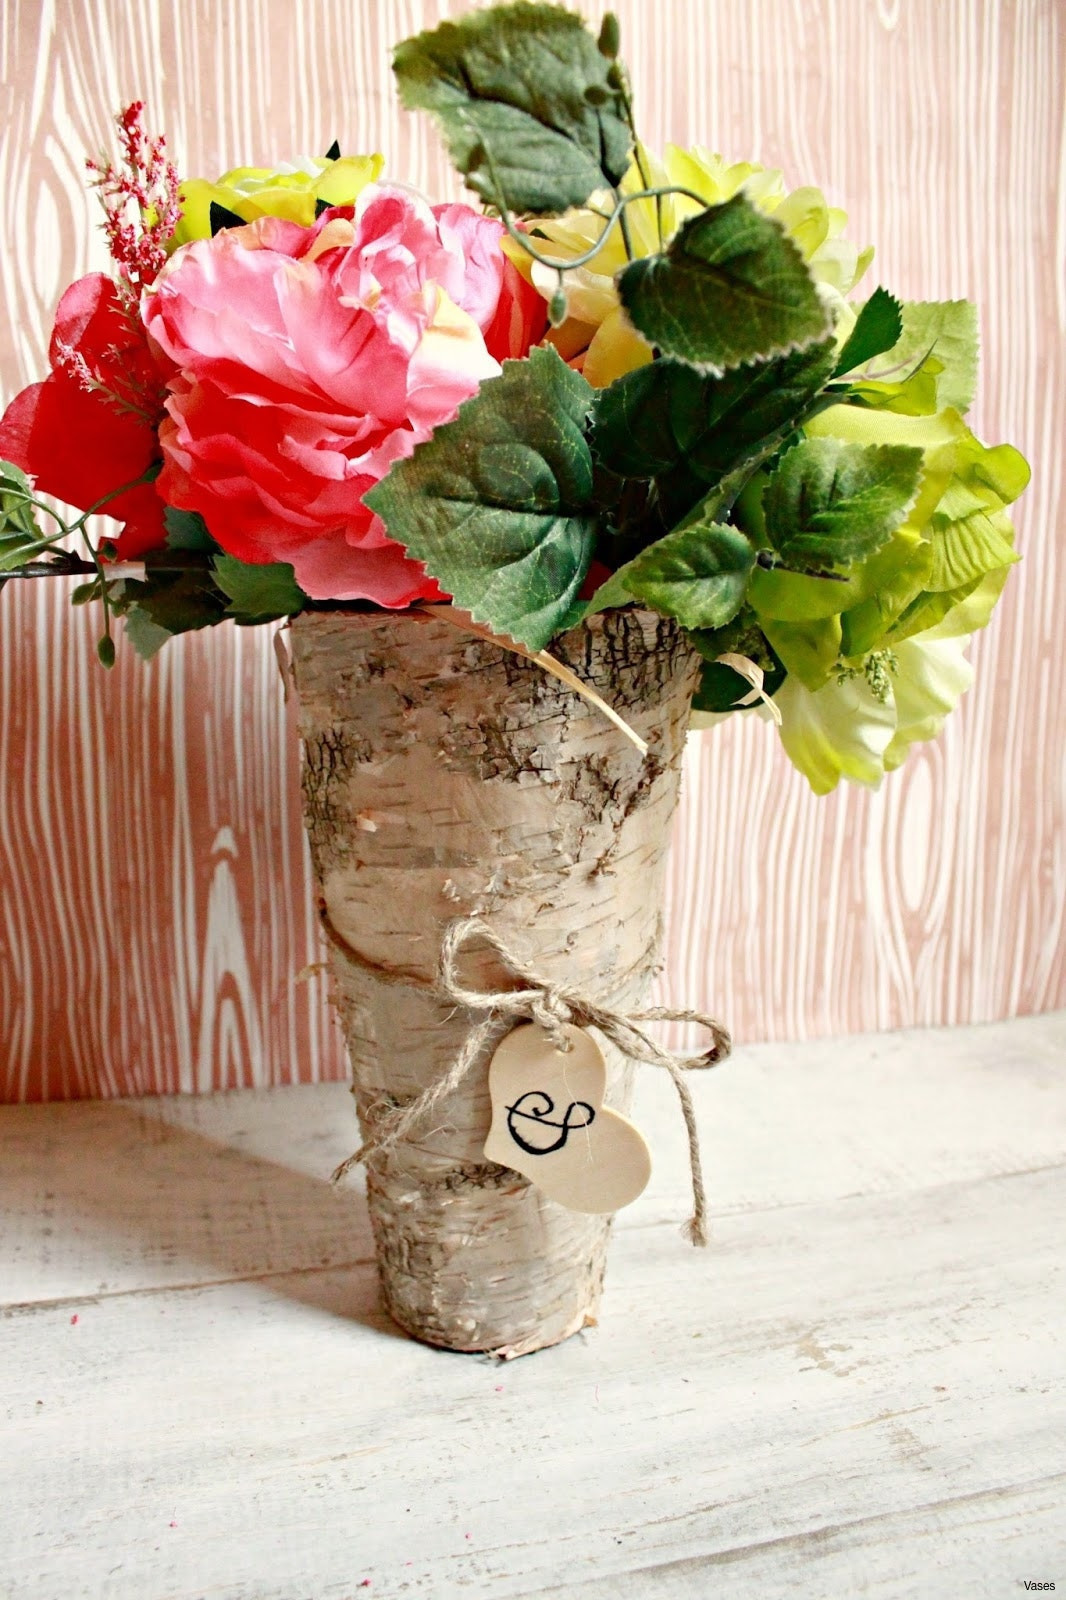 flower arrangement with vase of small wooden vase pictures elegant flower arrangements diy h vases throughout elegant flower arrangements diy h vases diy wood vase i 0d base